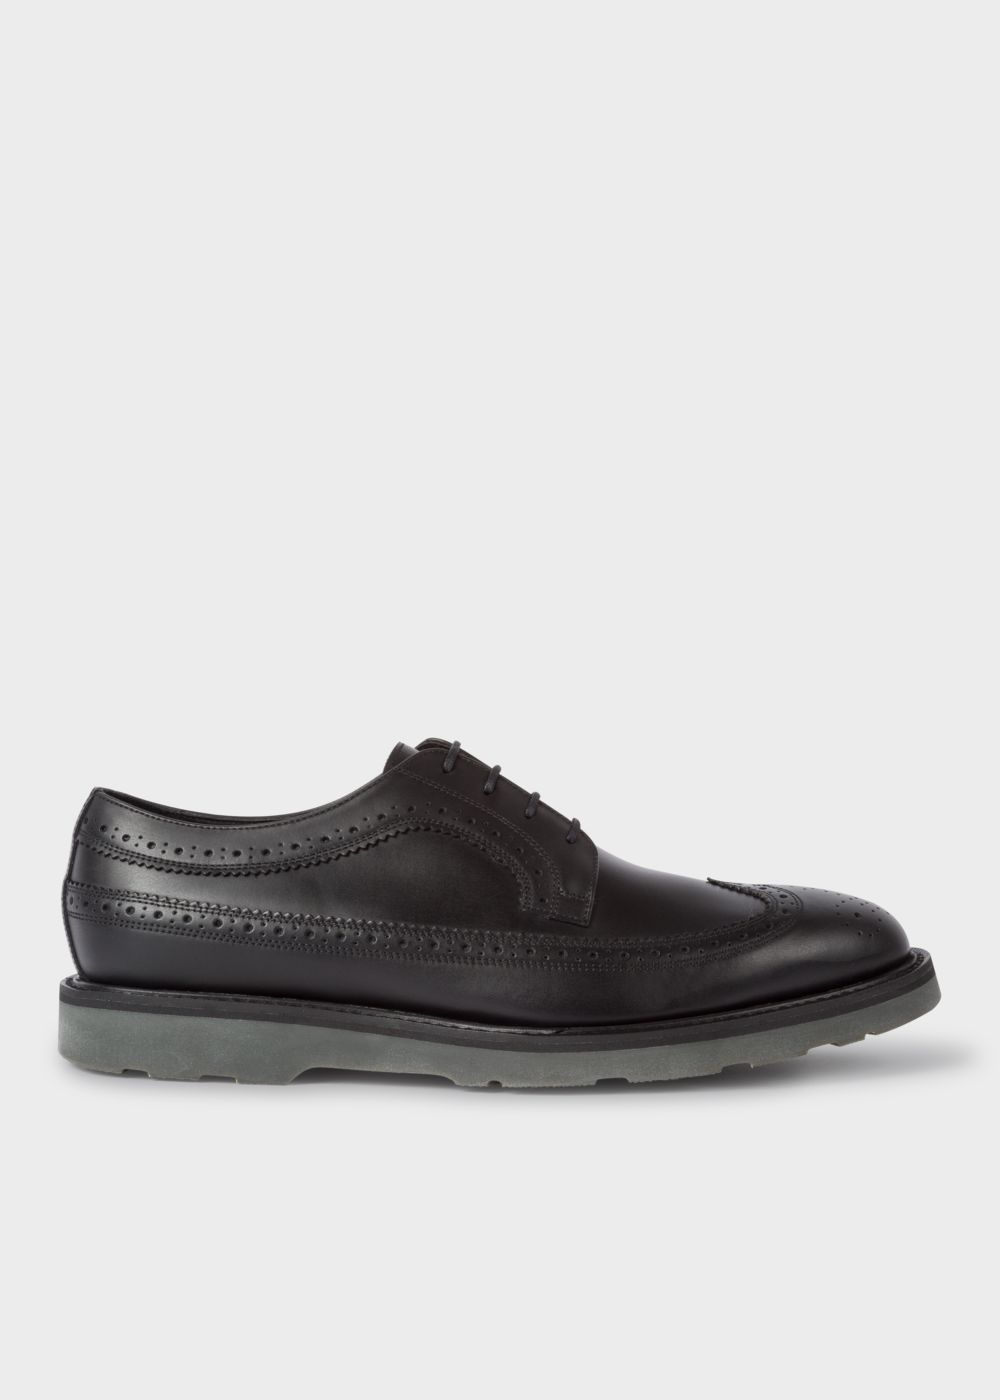 Paul Smith Men's Leather Black 'Grand' Brogues